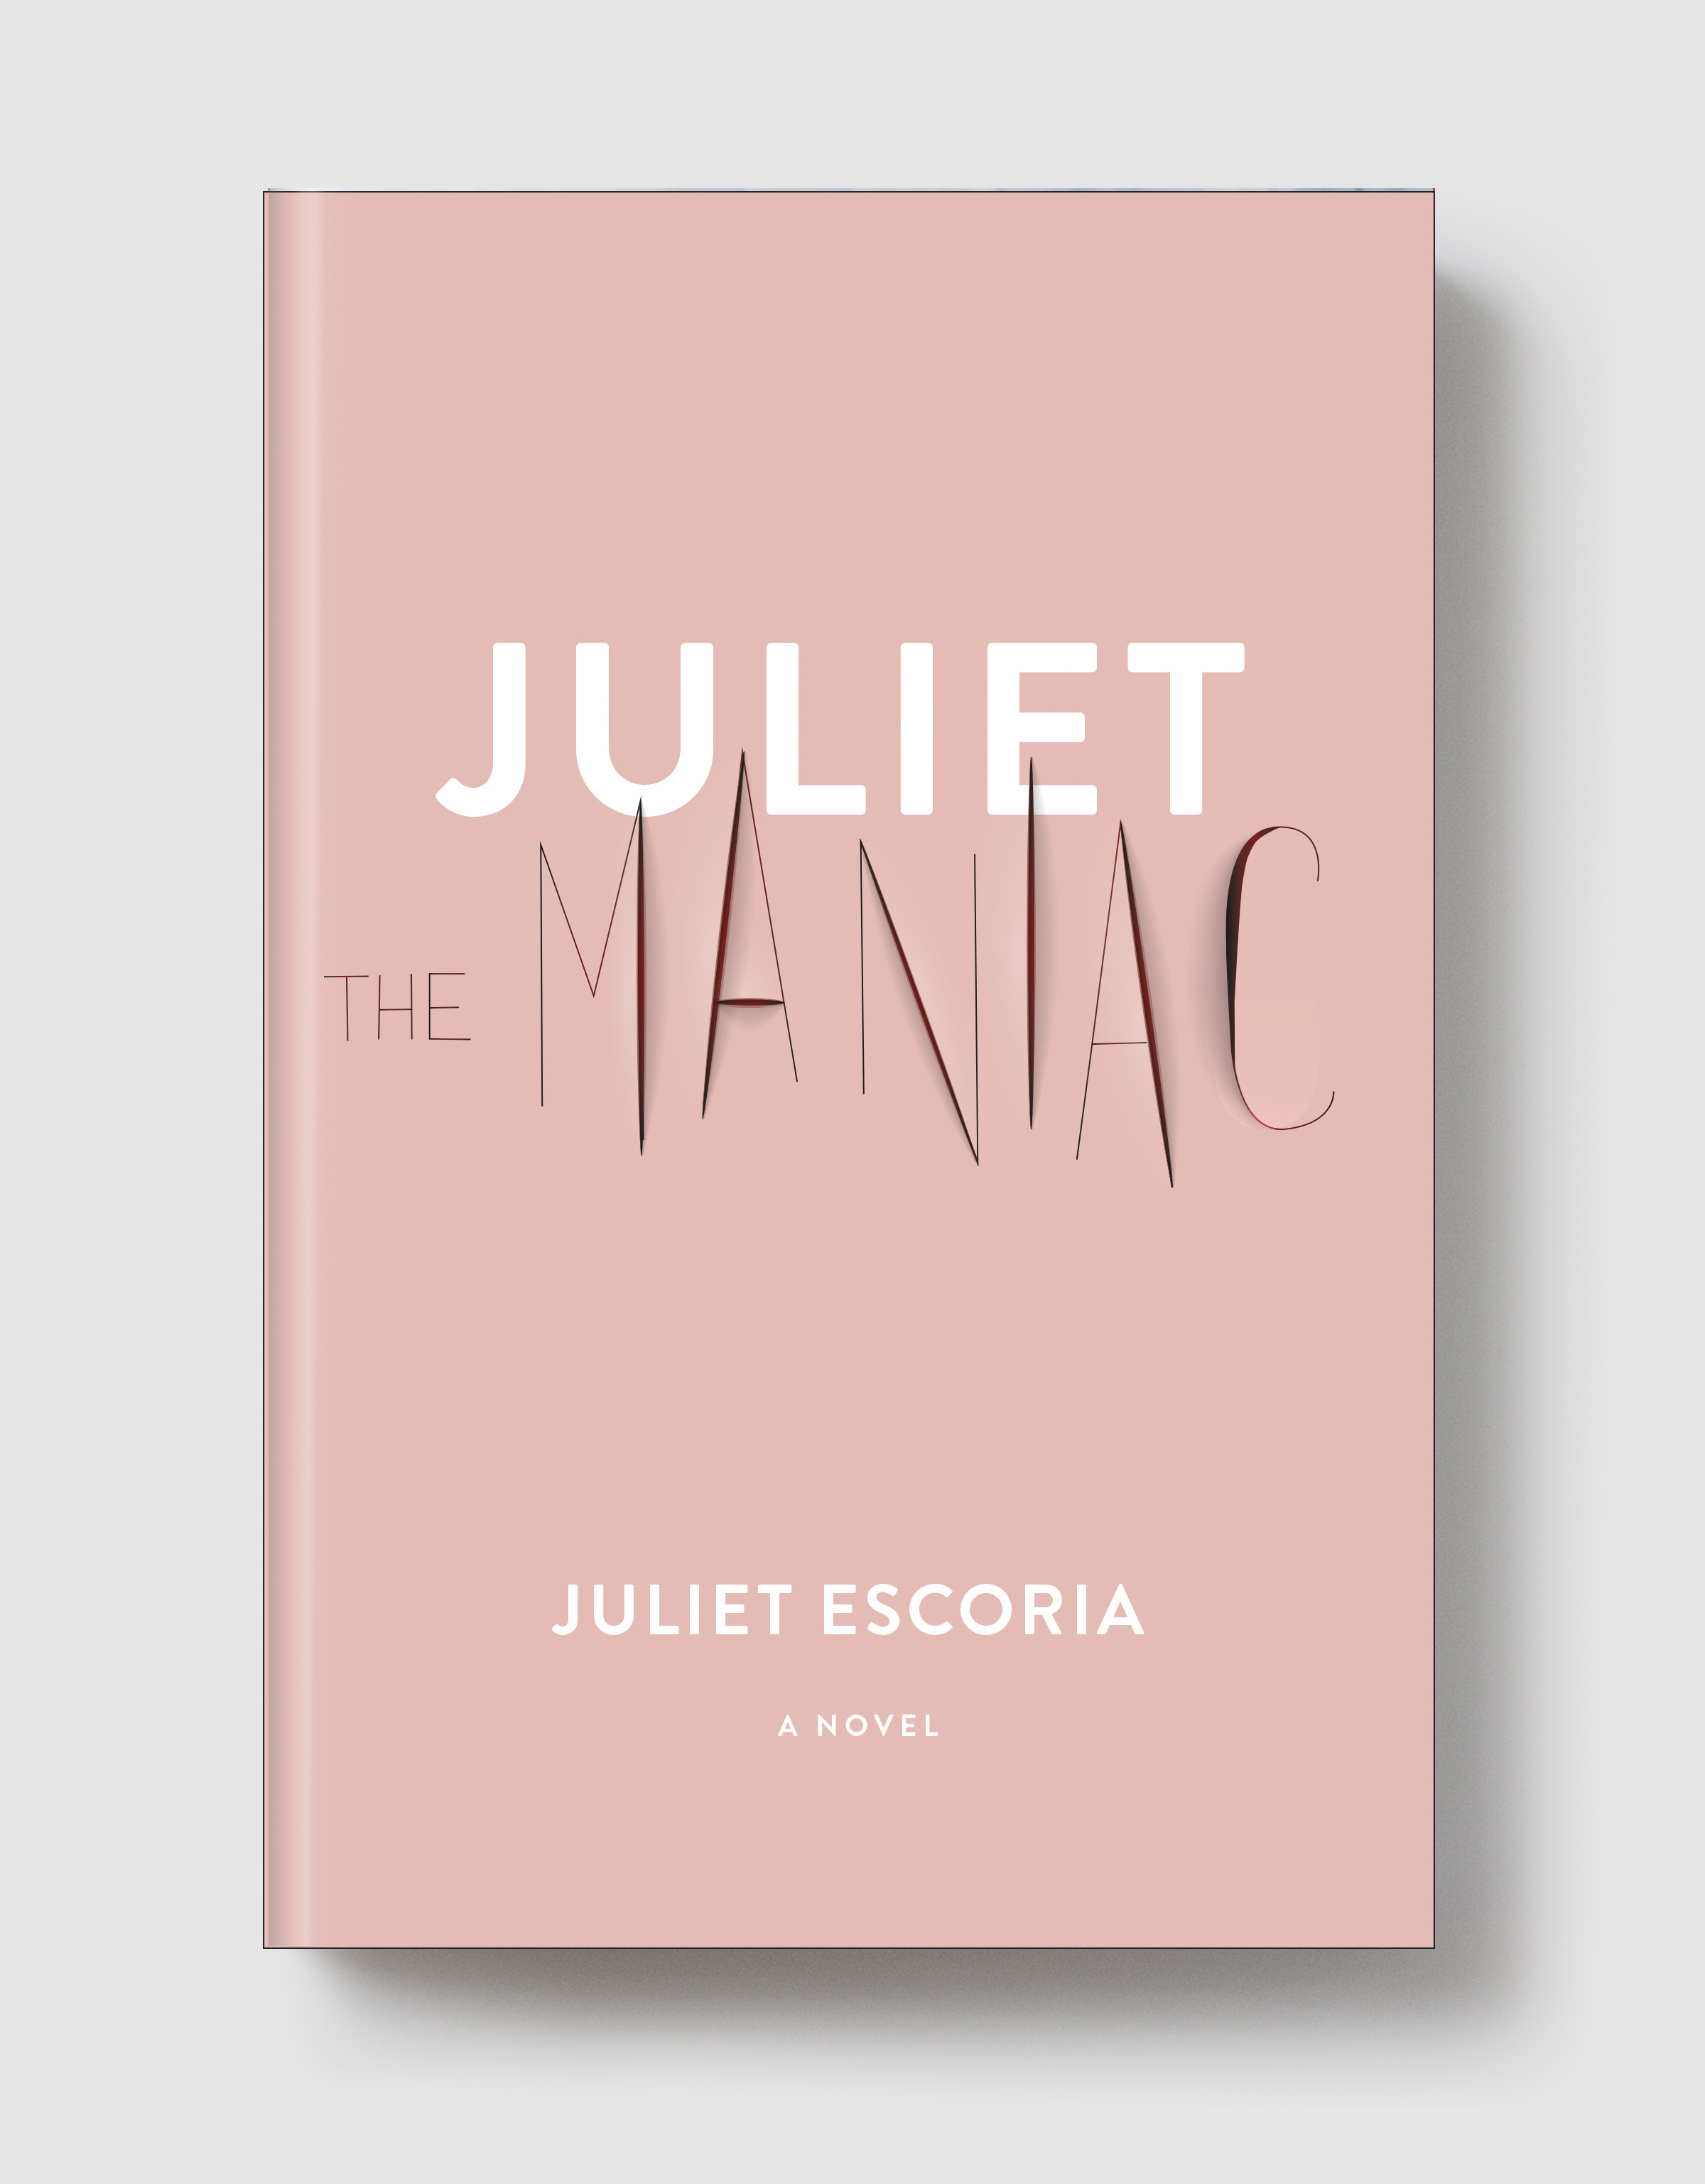 Listen to Juliet Escoria's curated soundtrack for her debut novel <i>Juliet the Maniac</i>